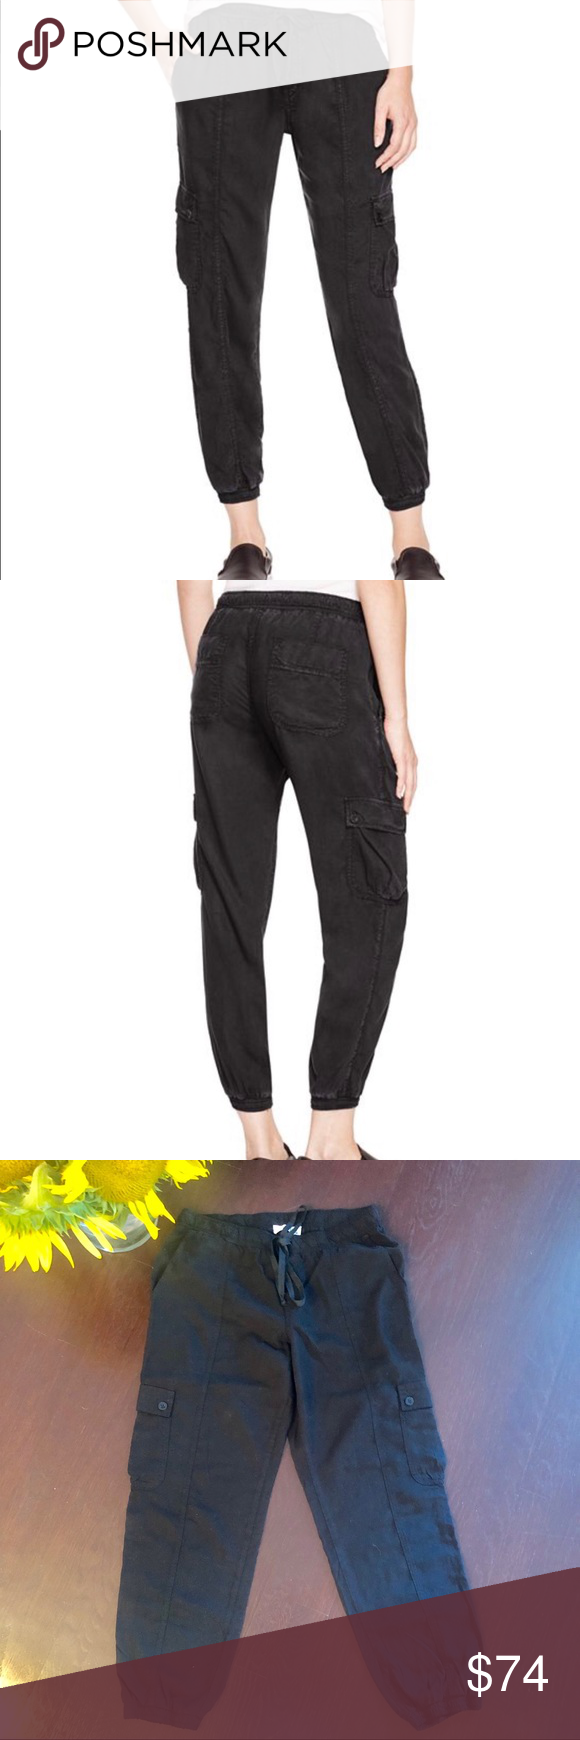 Bella Dahl Cropped Cargo Track Pants | Pants for women